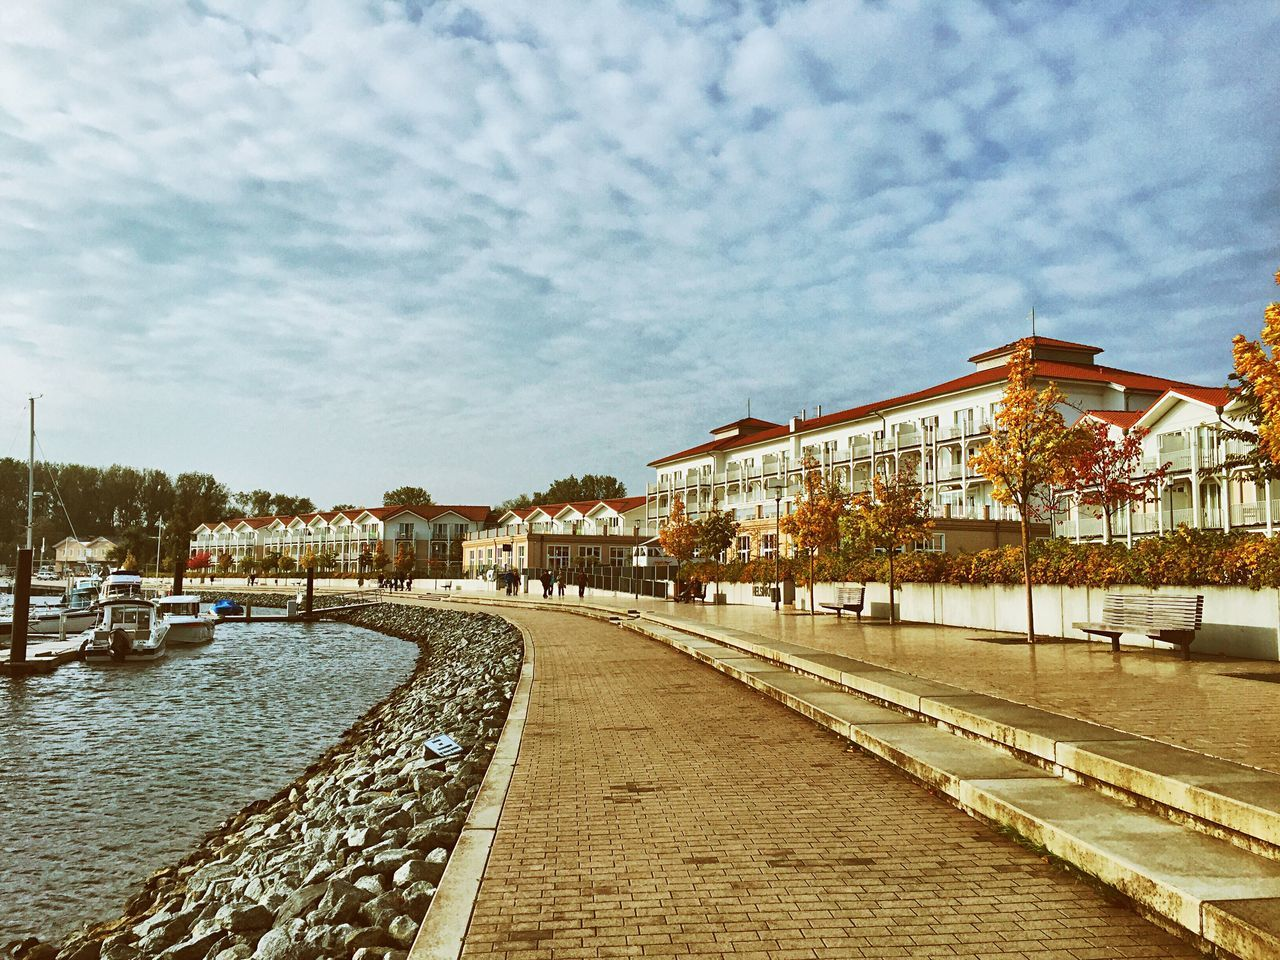 Architecture Building Exterior Built Structure Cobblestone Water Cloud City Sky Long Walkway Empty The Way Forward Day Pathway Outdoors Calm Cloud - Sky Waterfront Sea Ostseebad Boltenhagen